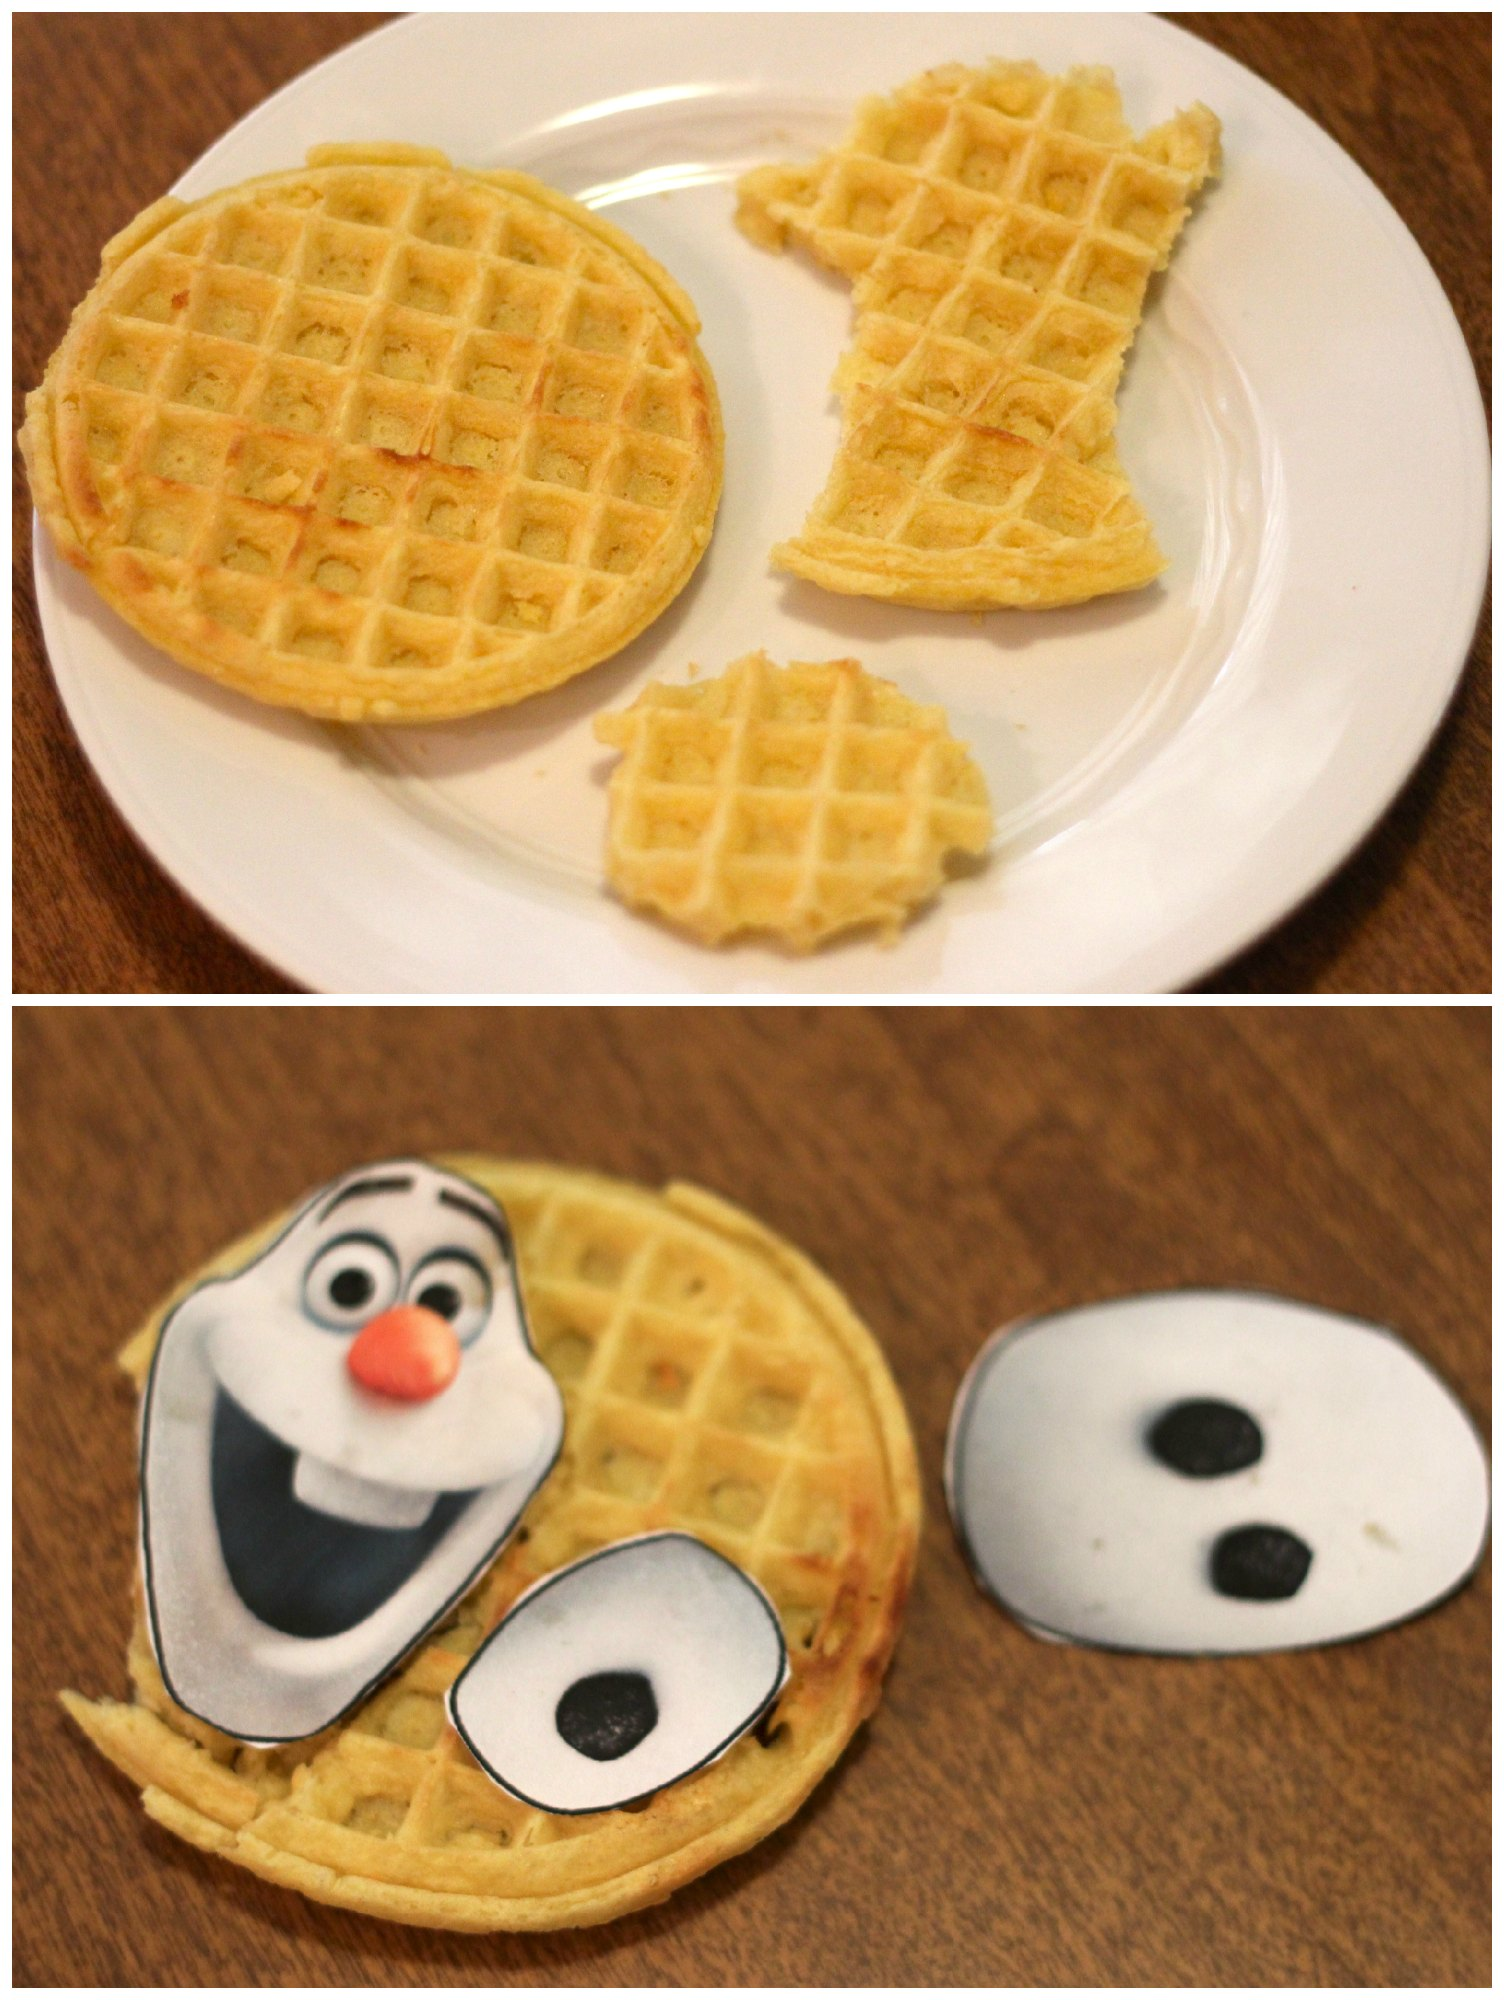 Making Olaf & Sven Waffles